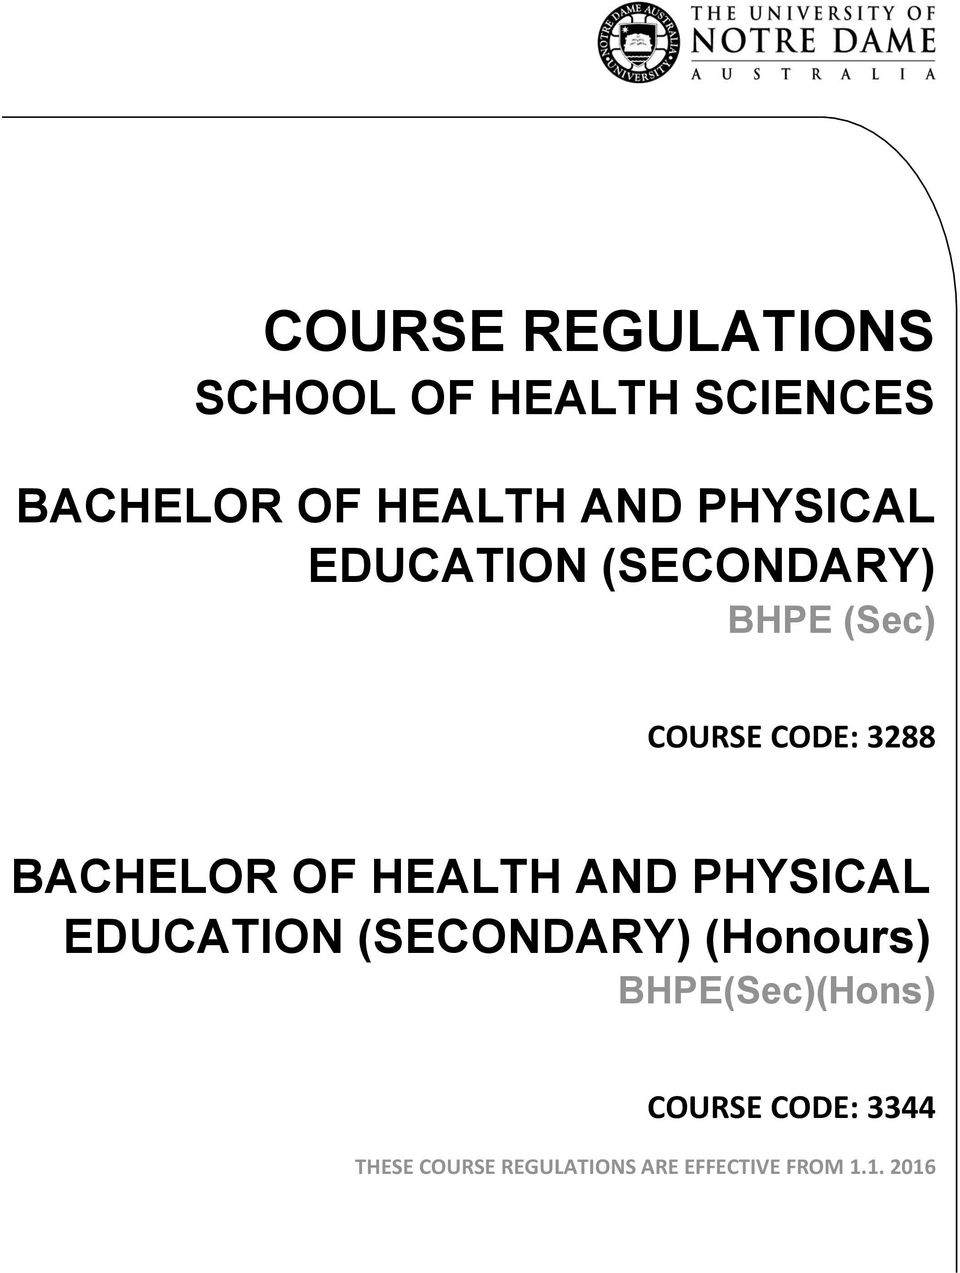 OF HEALTH AND PHYSICAL EDUCATION (SECONDARY) (Honours)